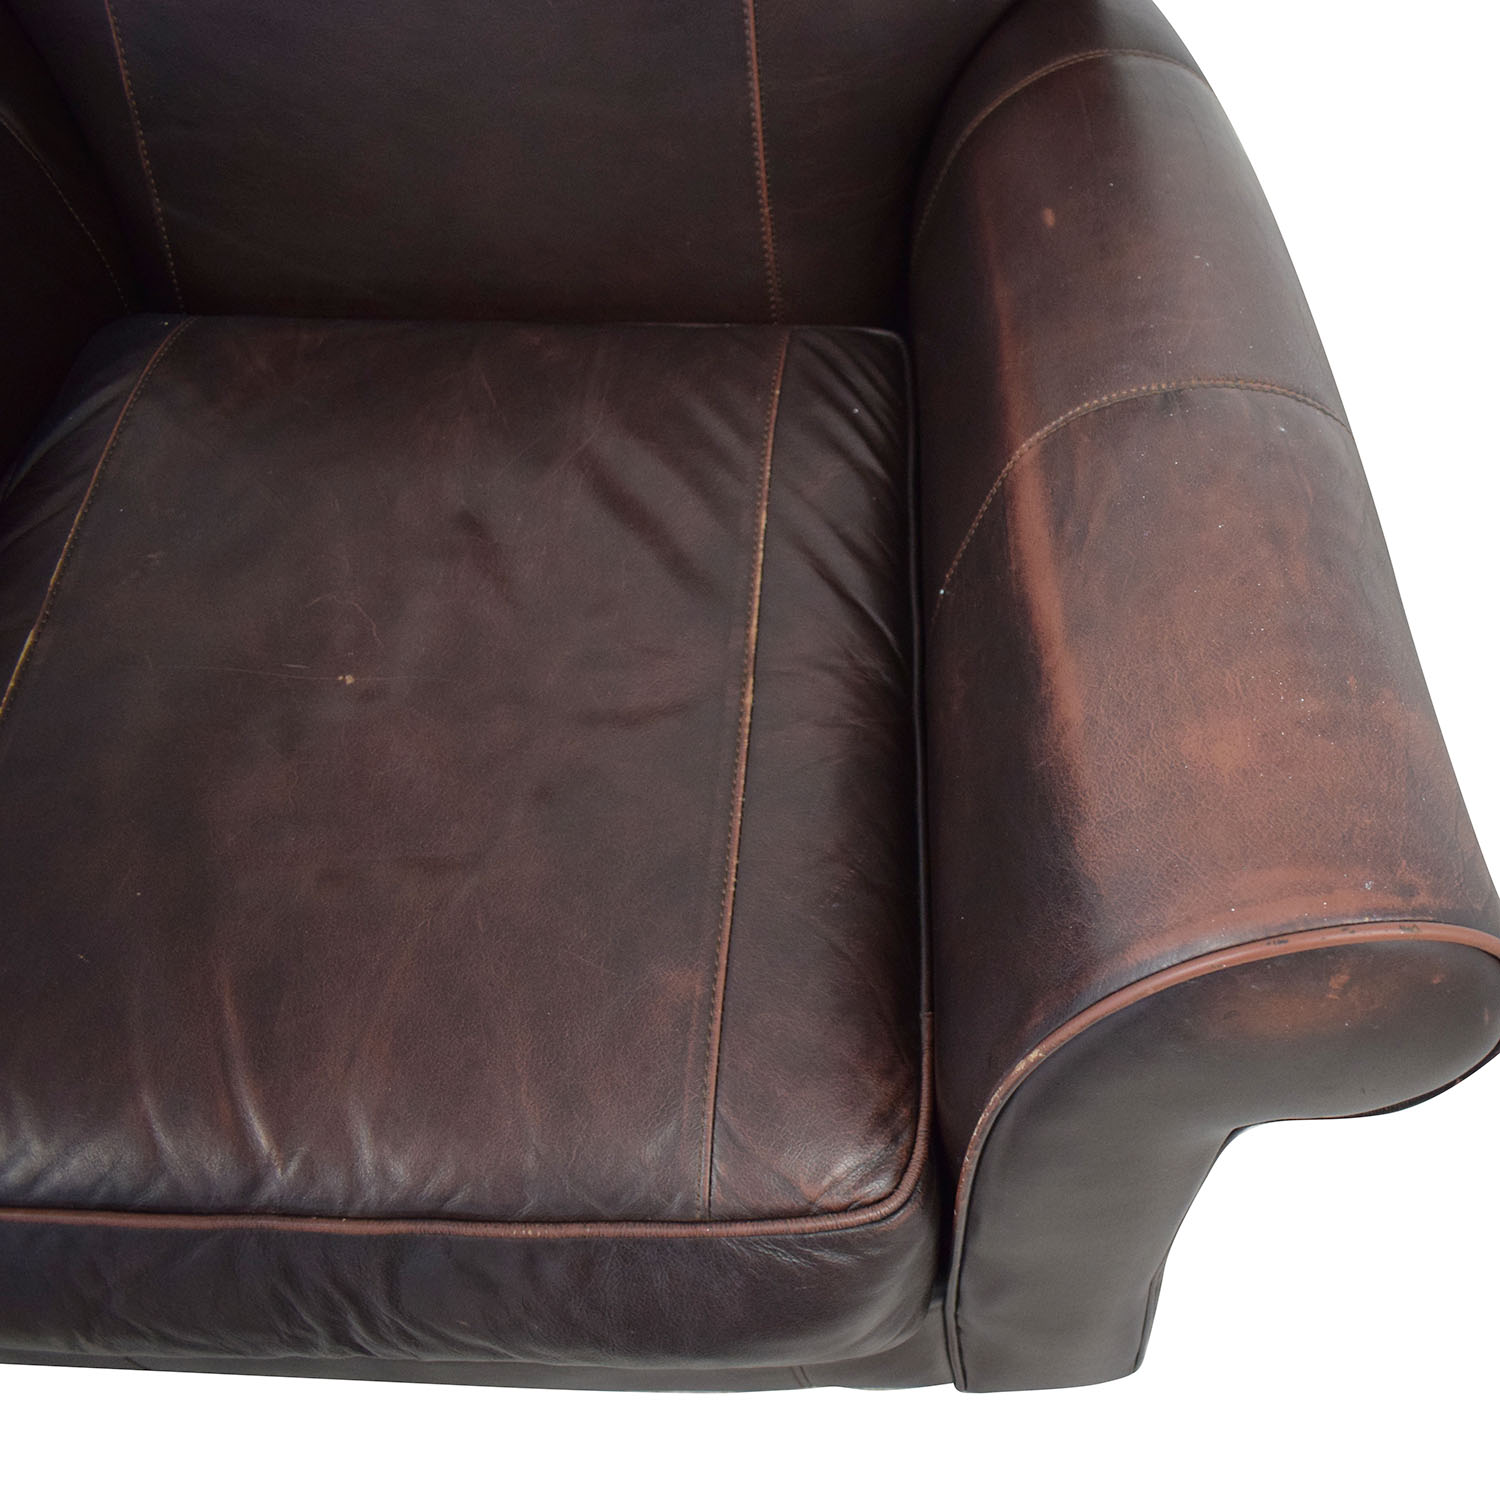 Bauhaus Furniture Bauhaus Furniture Leather Chair second hand